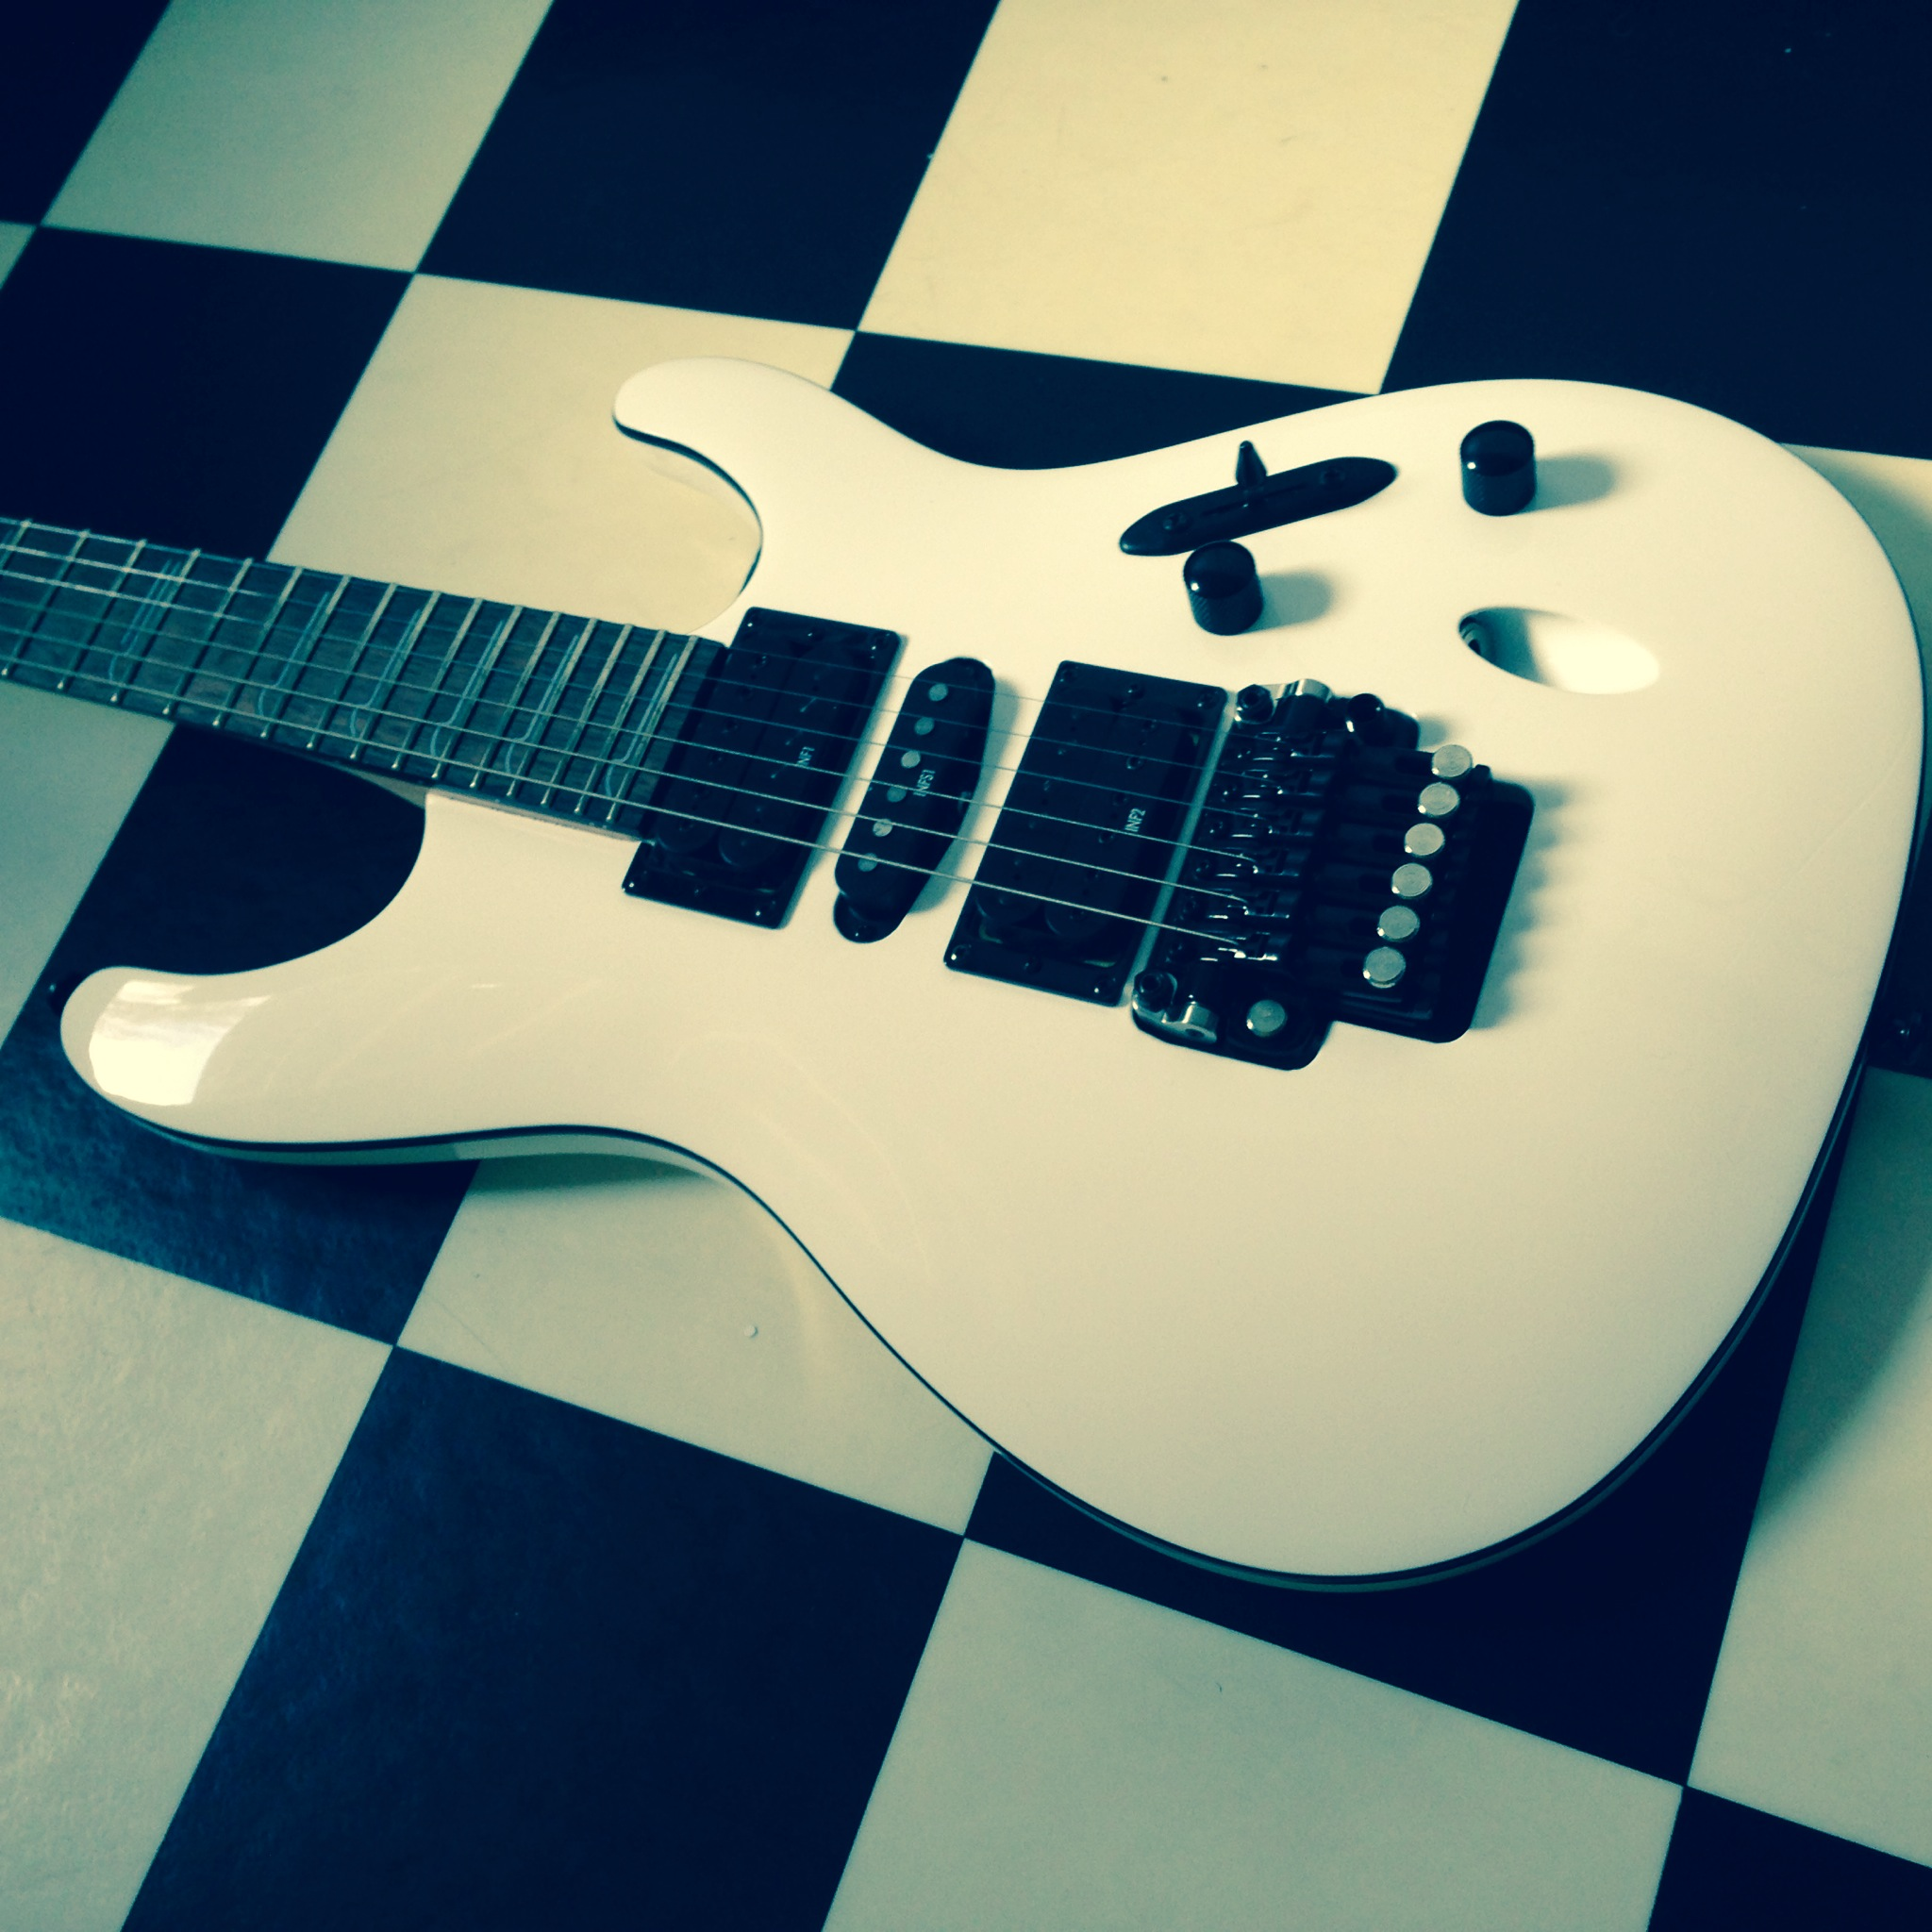 Ibanez-S-series-electric-guitar-white-model-S570B-The-Wong-Janice-4.JPG